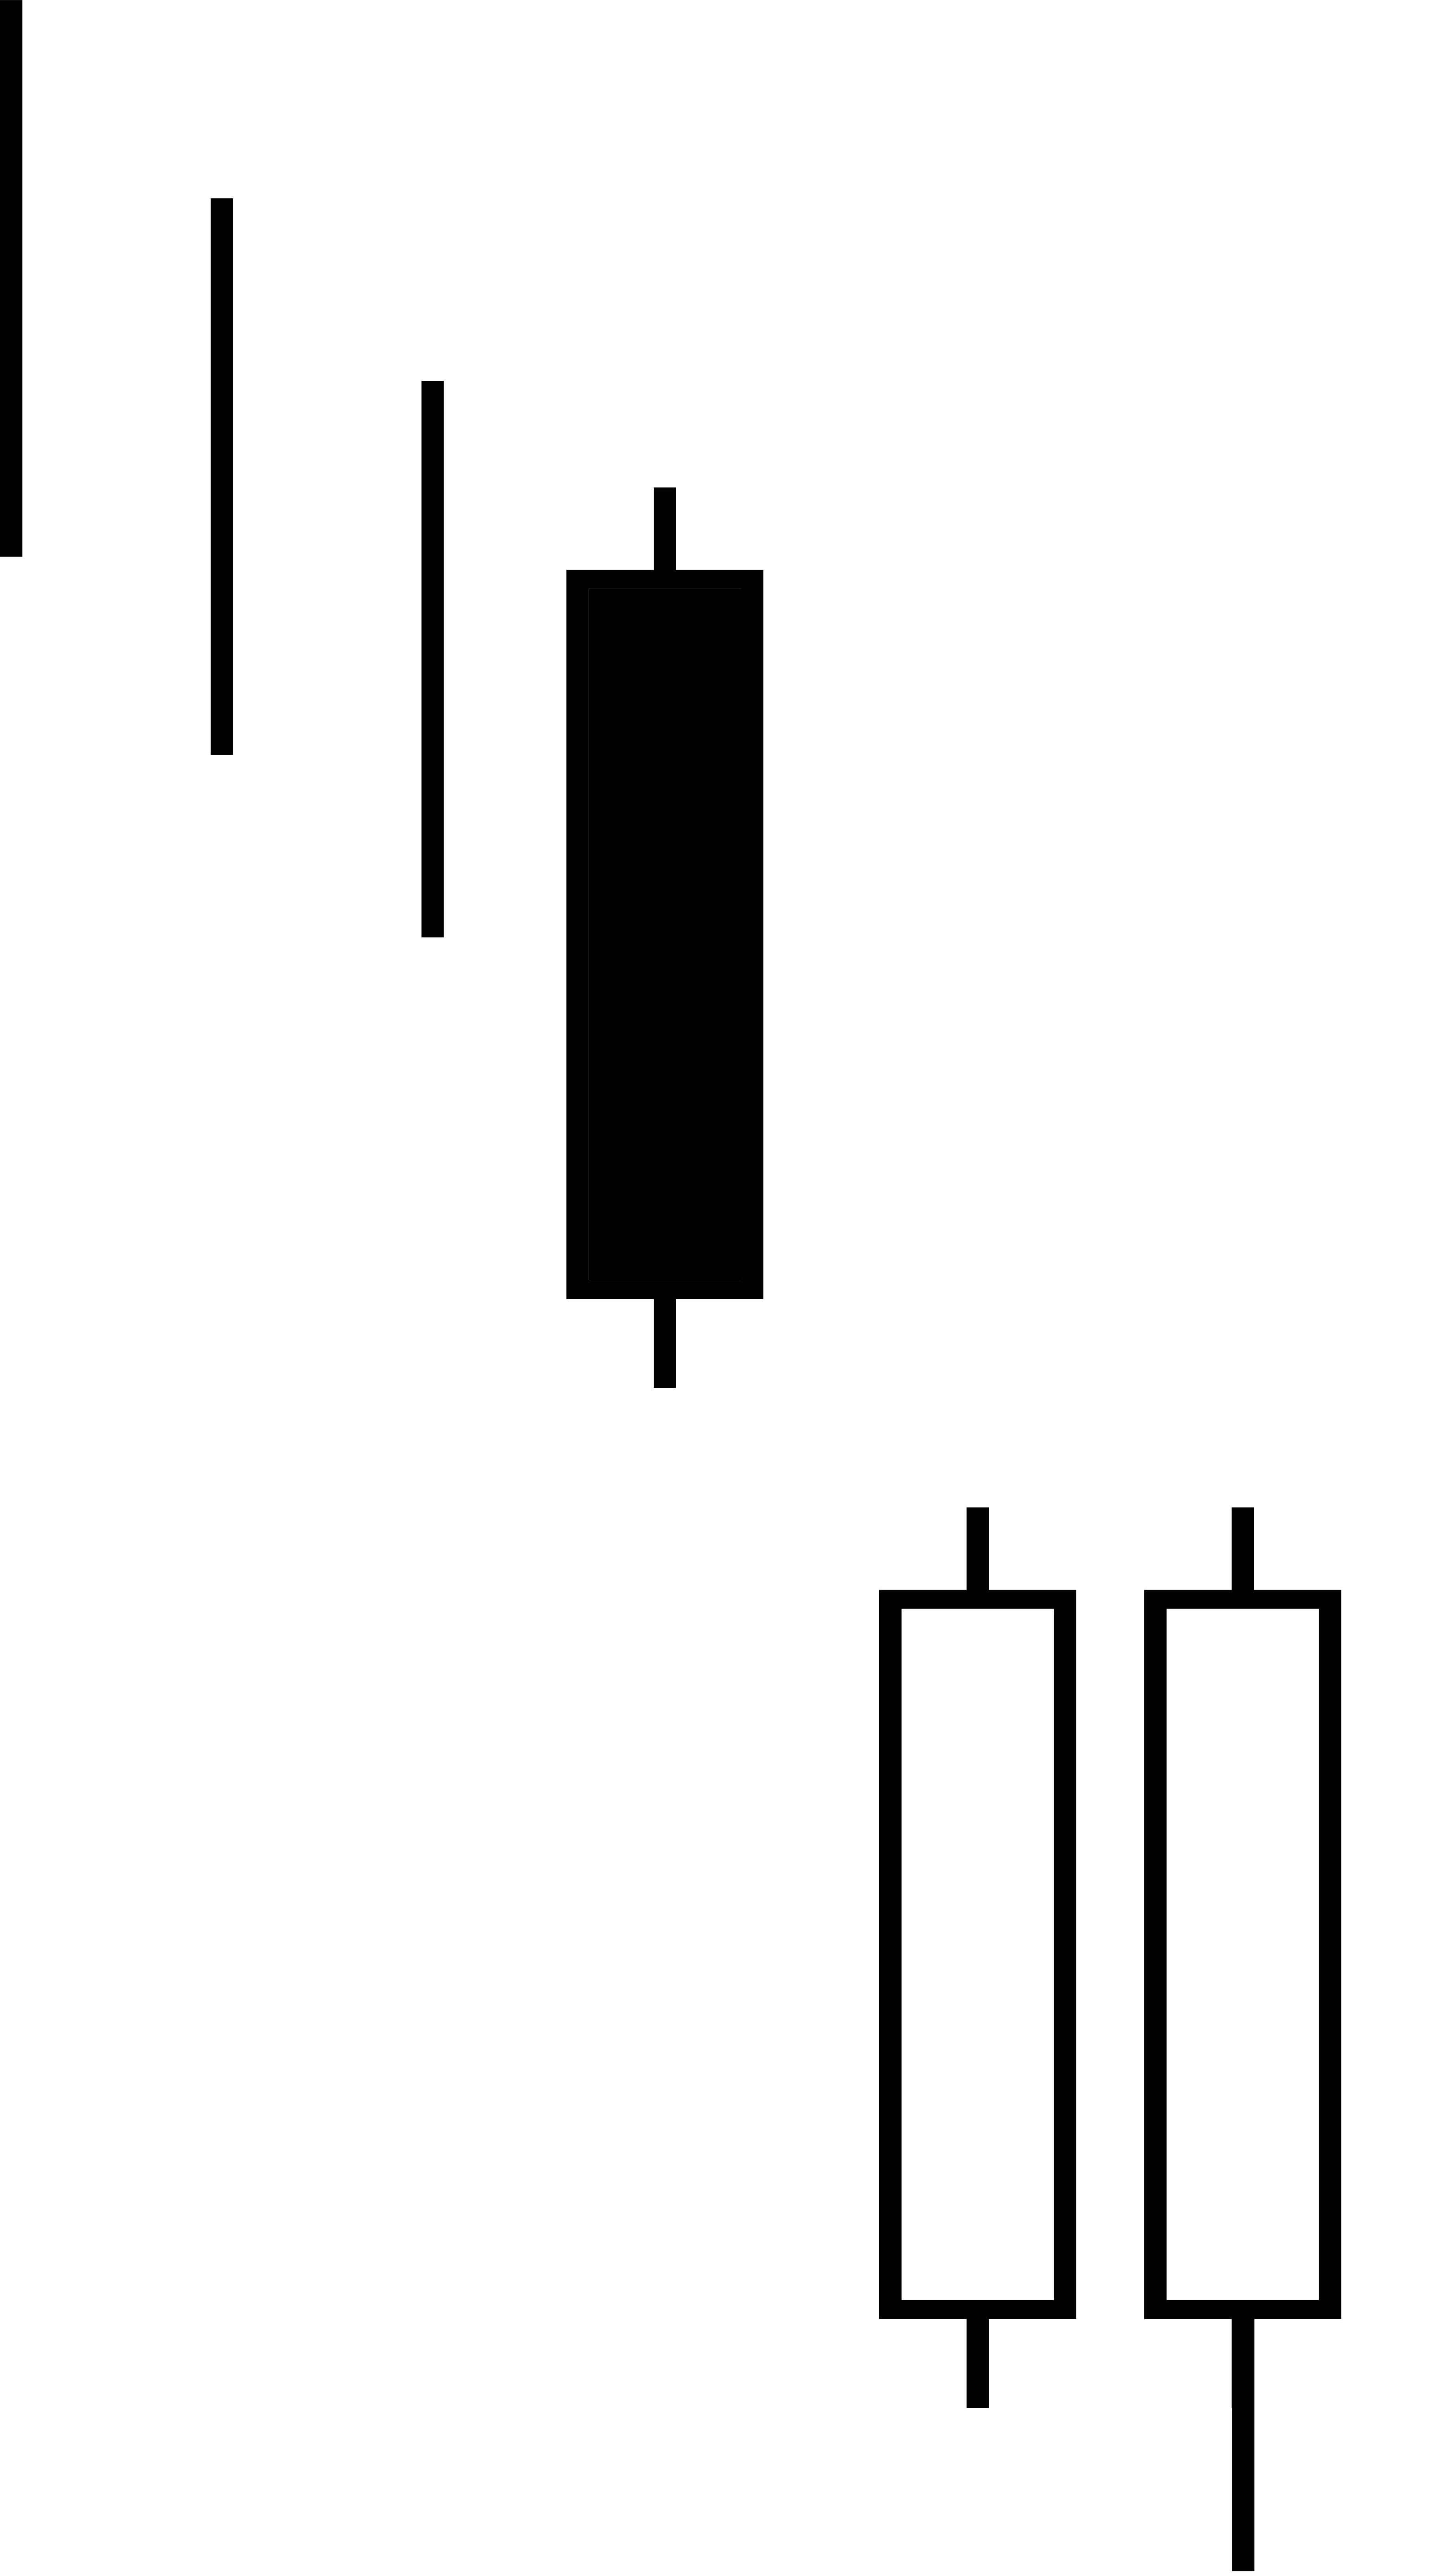 Candlestick Charts Live: Candlestick pattern bearish side-by-side white lines.jpg ,Chart